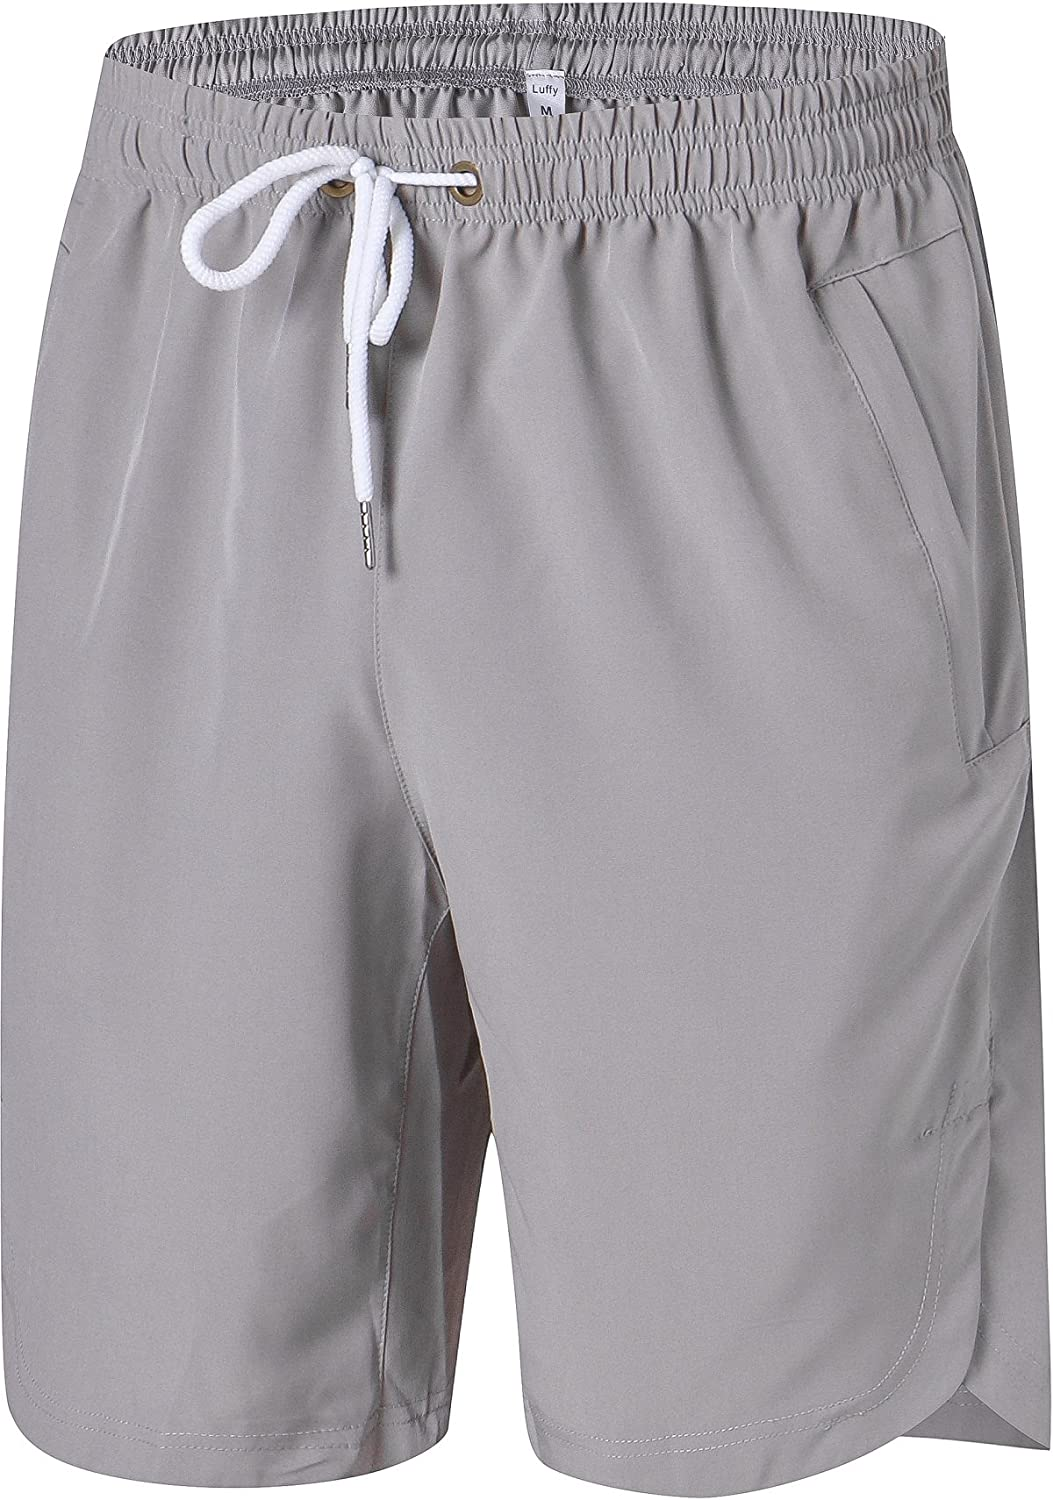 4f1200a089 Mens Athletic Gym Shorts Elastic Waist - Quick Dry Stretchable for Running,  Training, Workout Swim Trunks for Watersports - Beige -: Amazon.co.uk:  Clothing